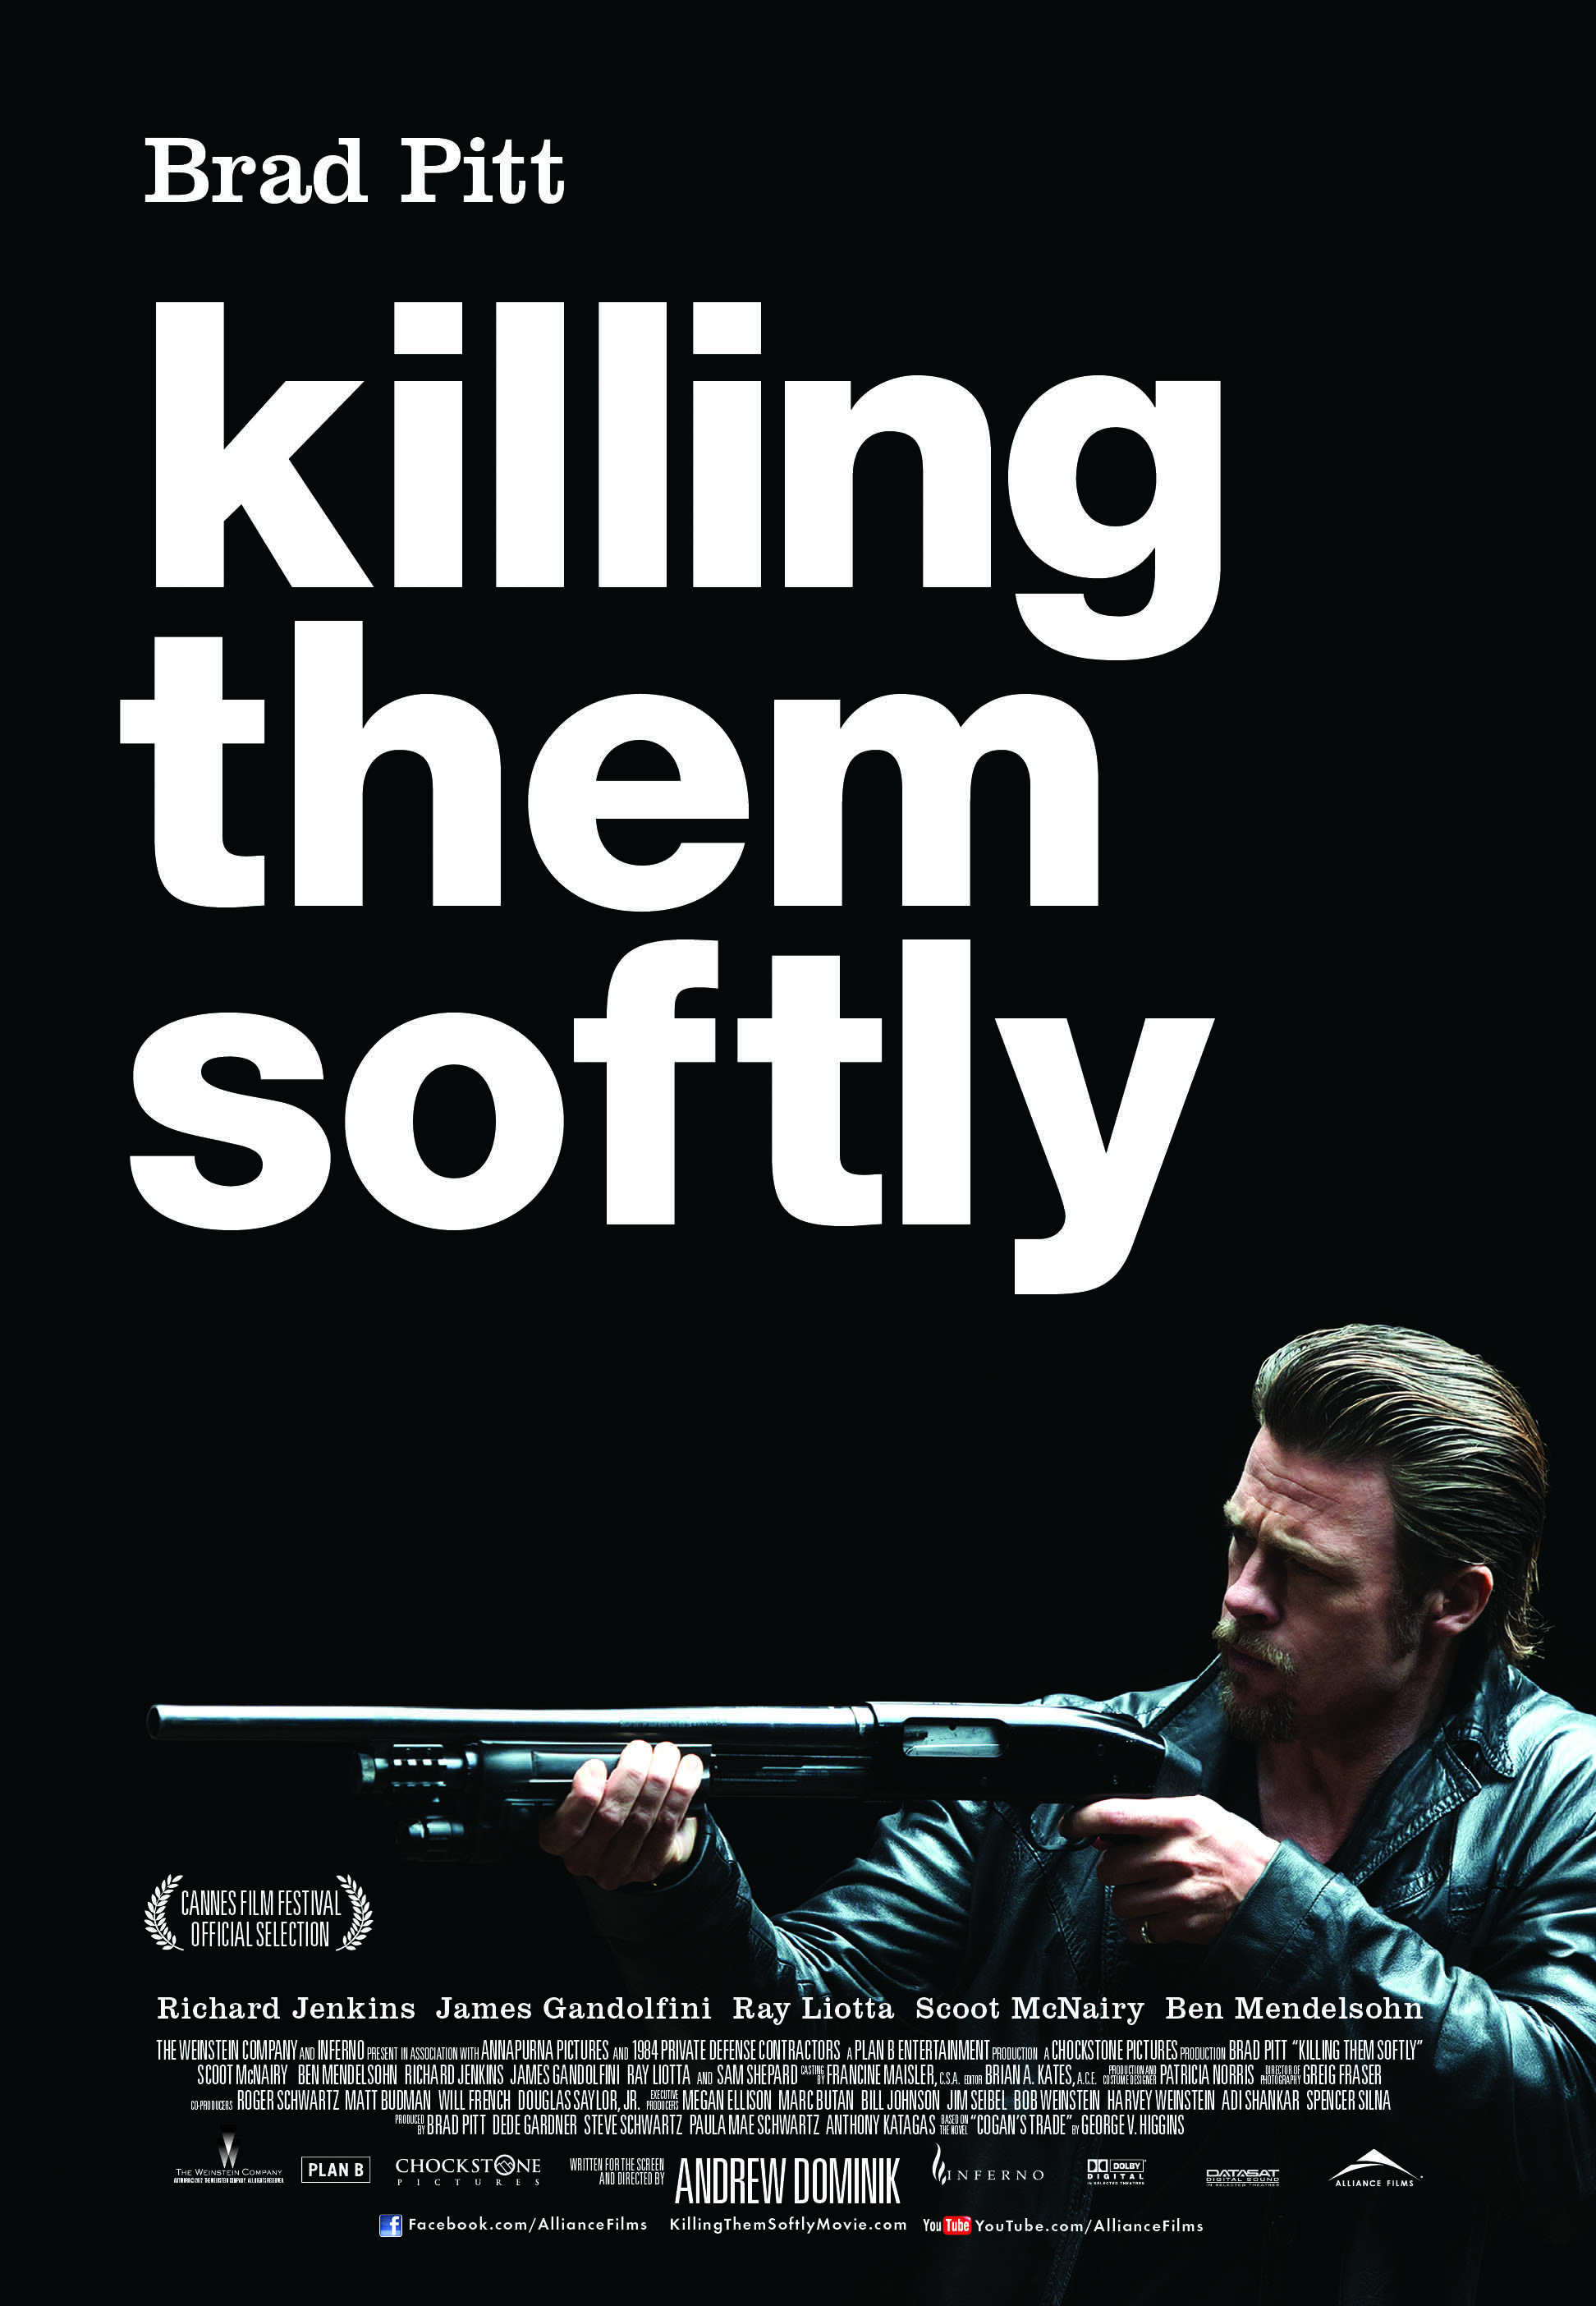 "#GIVEAWAY: ENTER TO WIN A DOUBLE PASS TO SEE ""KILLING THEM SOFTLY"" STARRING BRAD PITT"